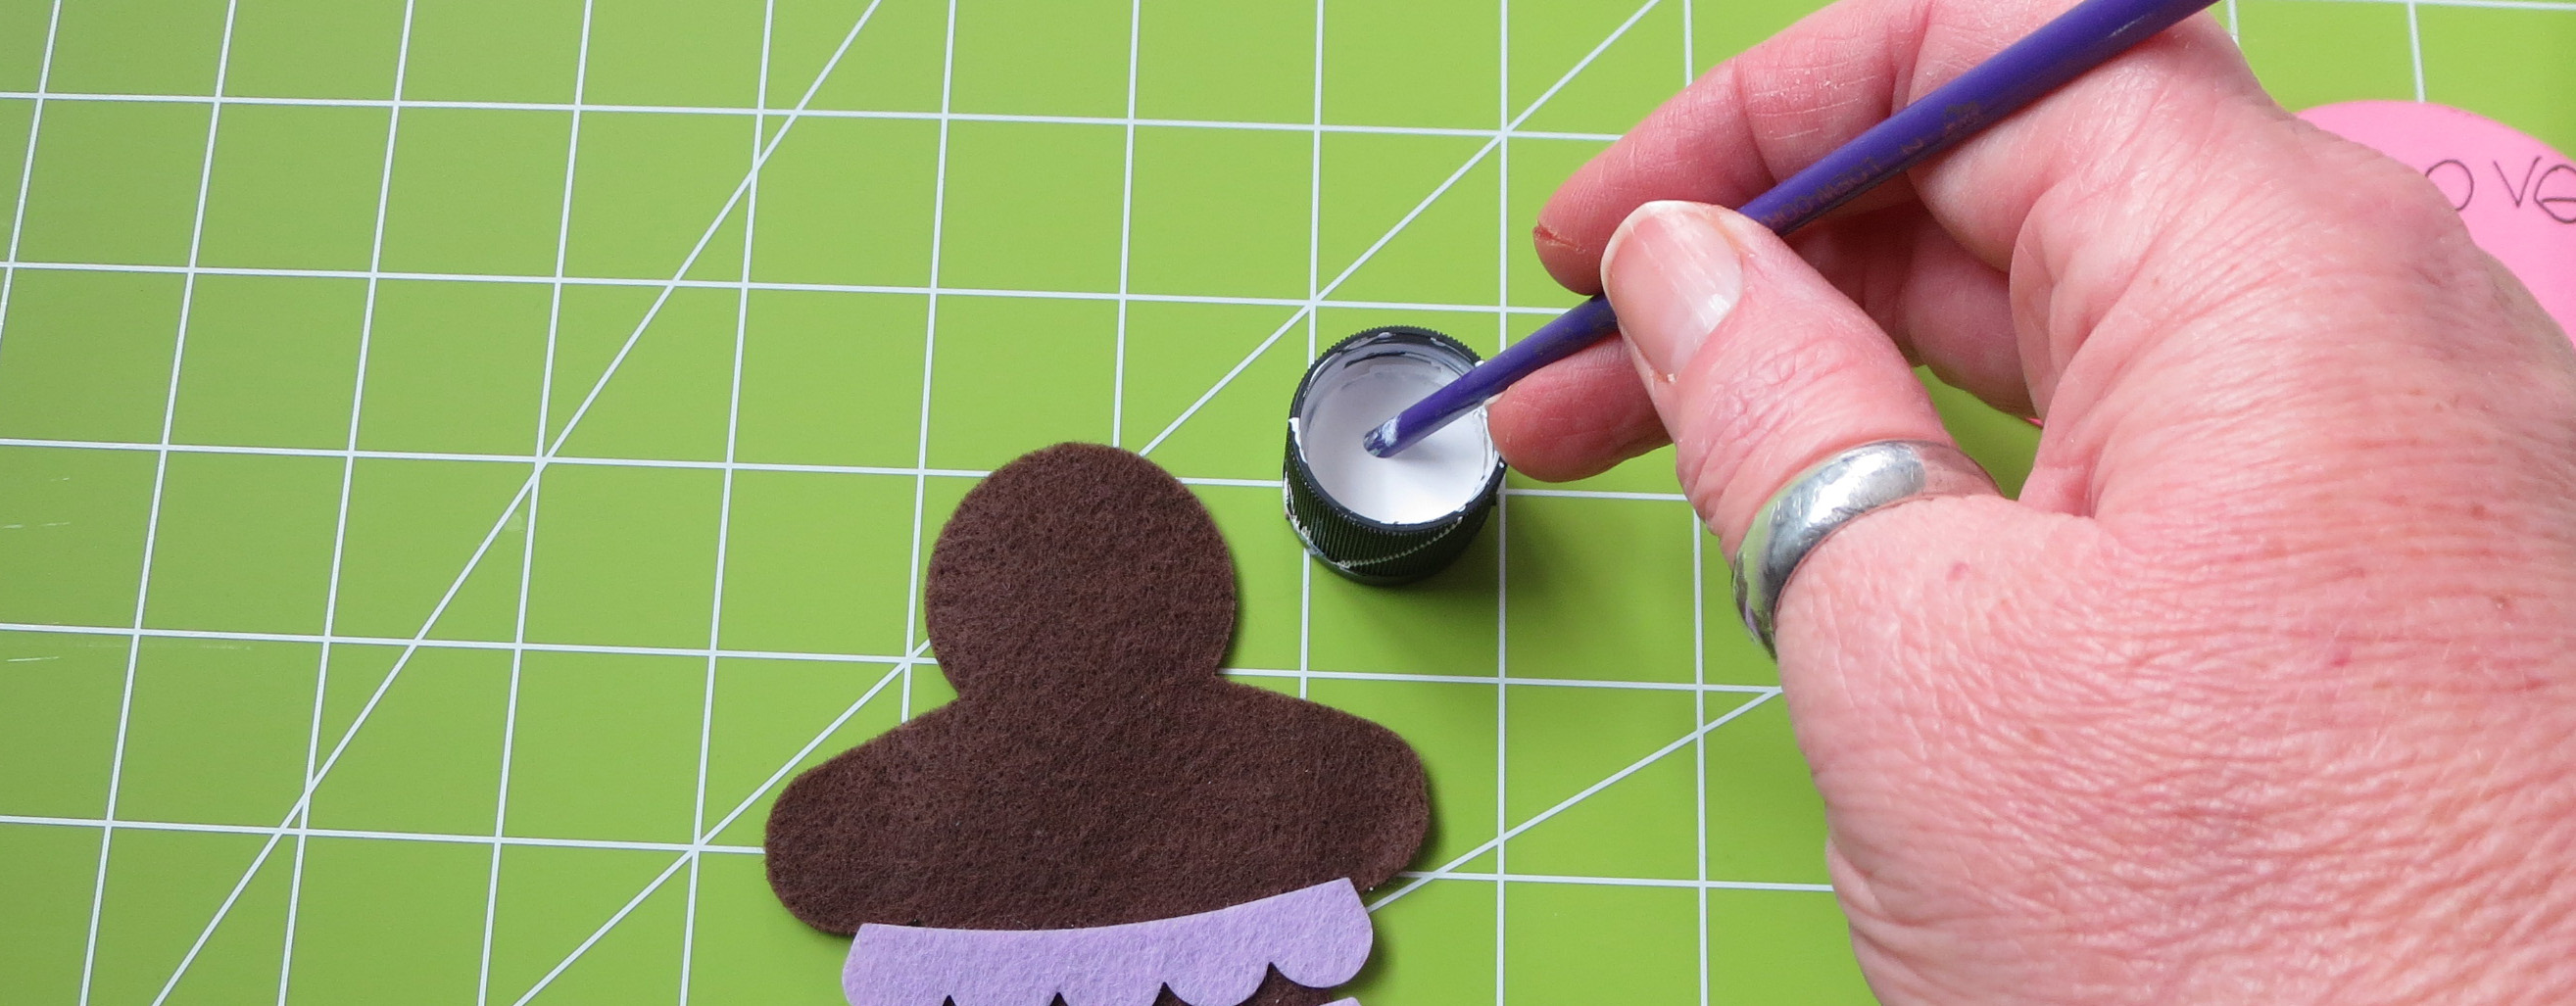 hand holding paint brush in white acrylic paint with brown felt gingerbread man on lime green self healing cutting mat